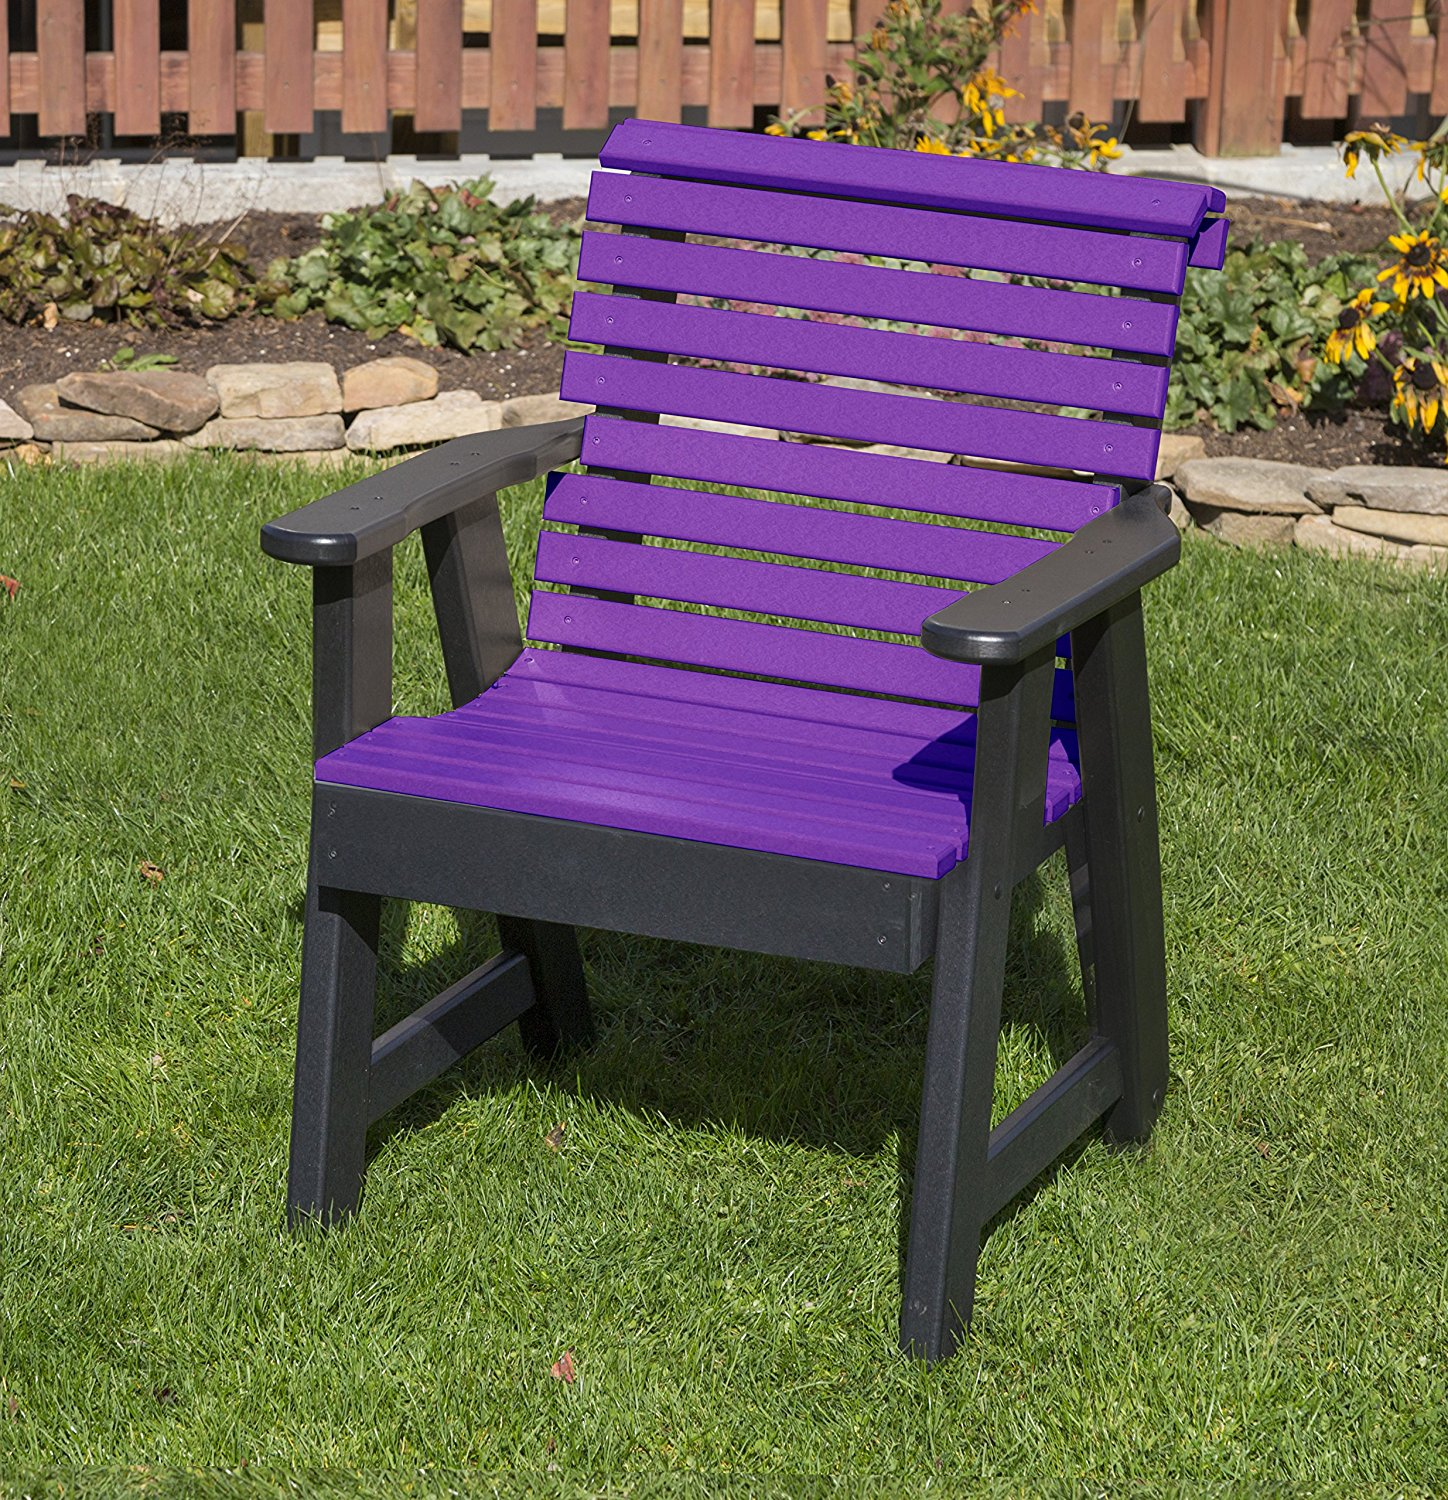 Outdoor Patio Garden Lawn Exterior Bright Purple Finish Poly Lumber Roll Back 2 Ft Chair Heavy Duty Everlasting -Amish Crafted